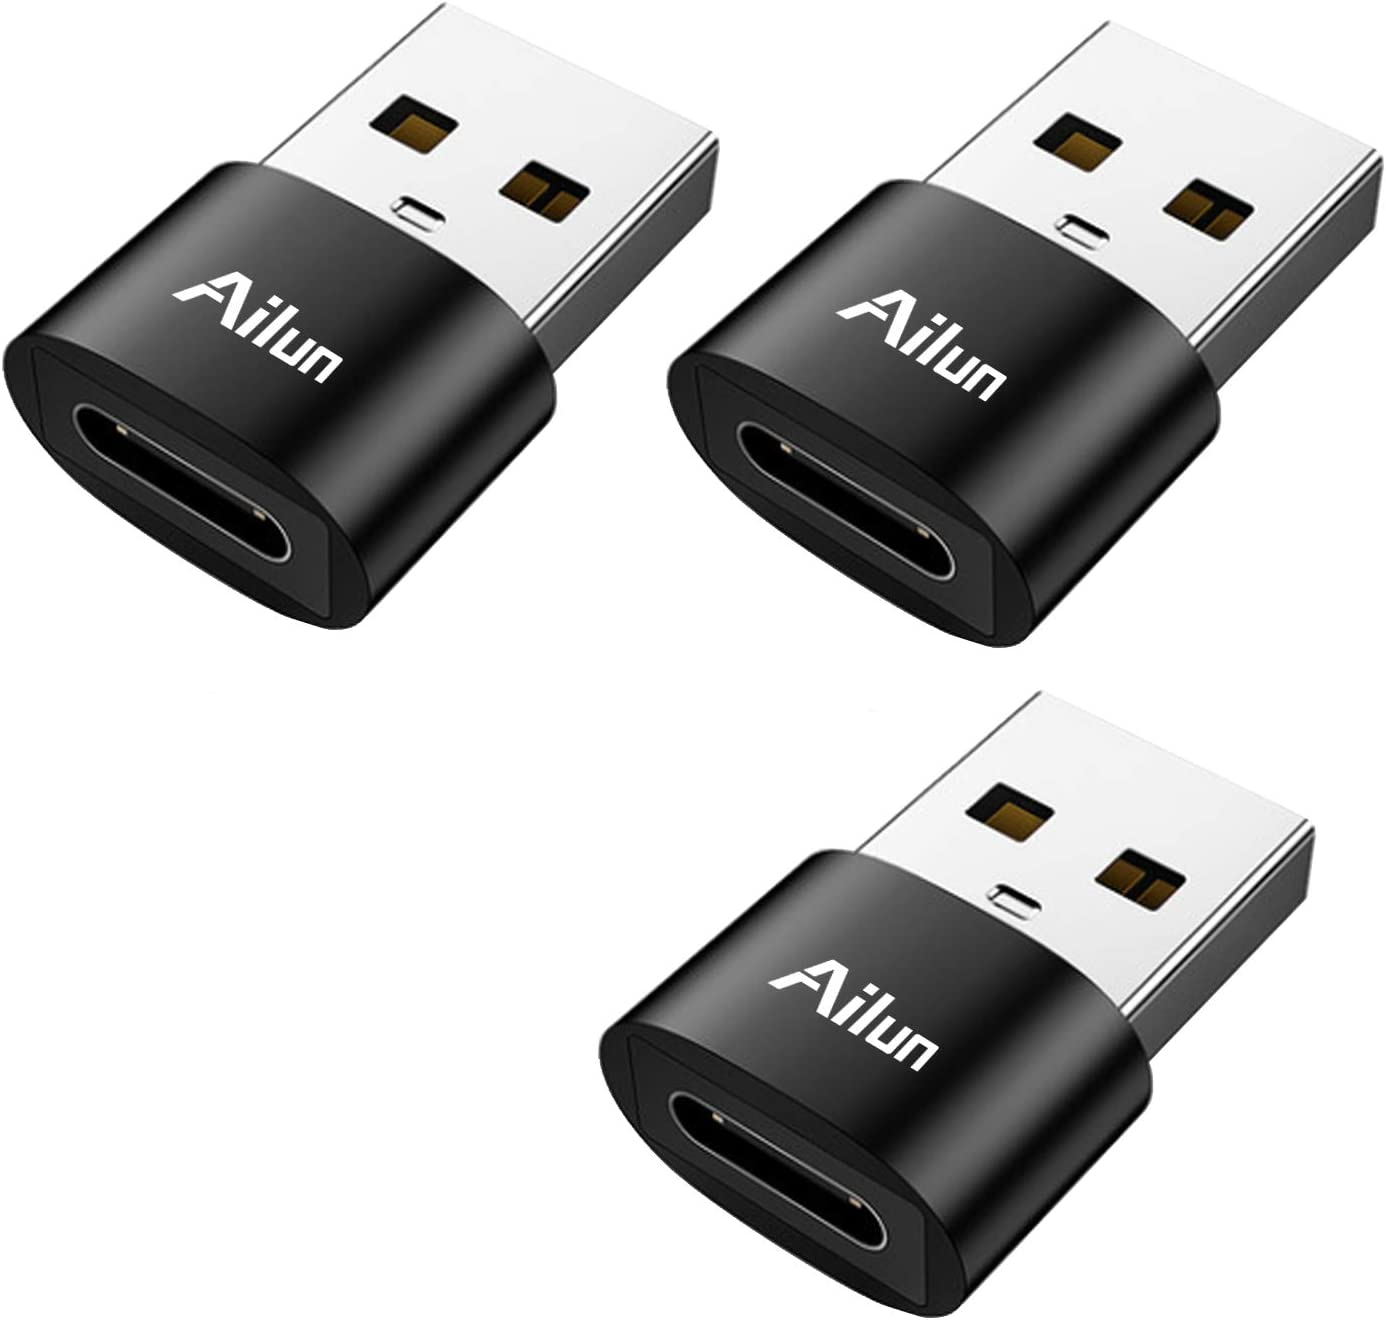 Ailun USB C Female to USB A Male Adapter 3 Pack Type C to A Charger Cable Adapter for iPhone 11 12 Mini Pro Max Galaxy Note 10 S20 Plus 20 S21 21 FE Ultra